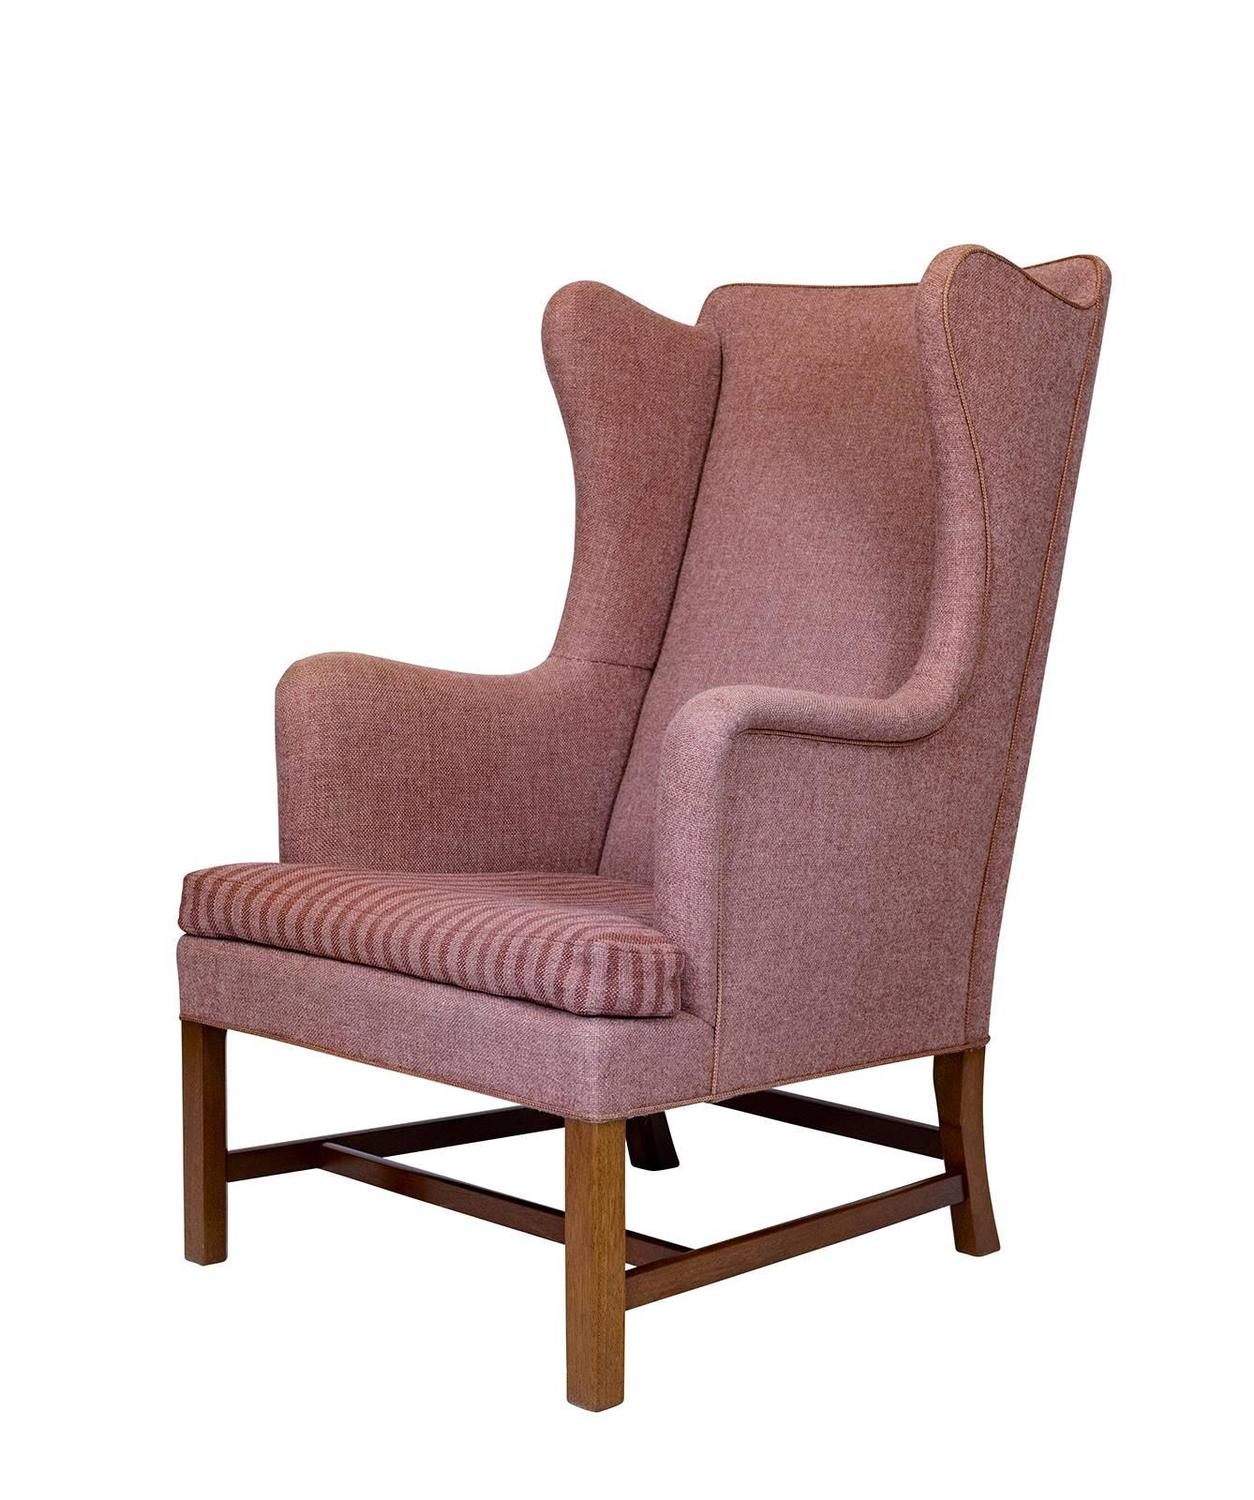 Kaare Klint Wingback Chair For Sale at 1stdibs